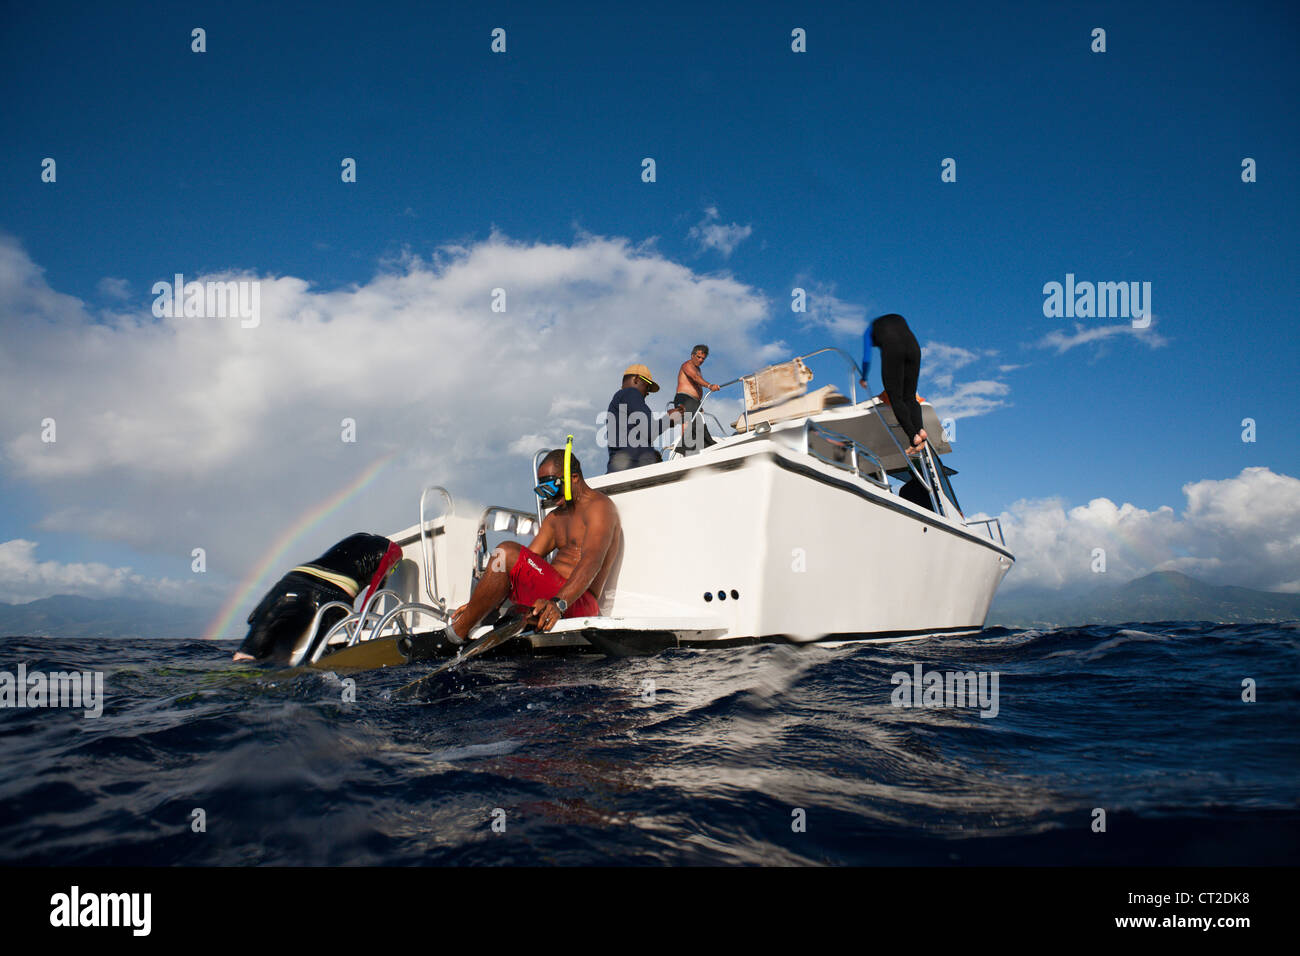 Whale watching Trip, Caribbean Sea, Dominica - Stock Image